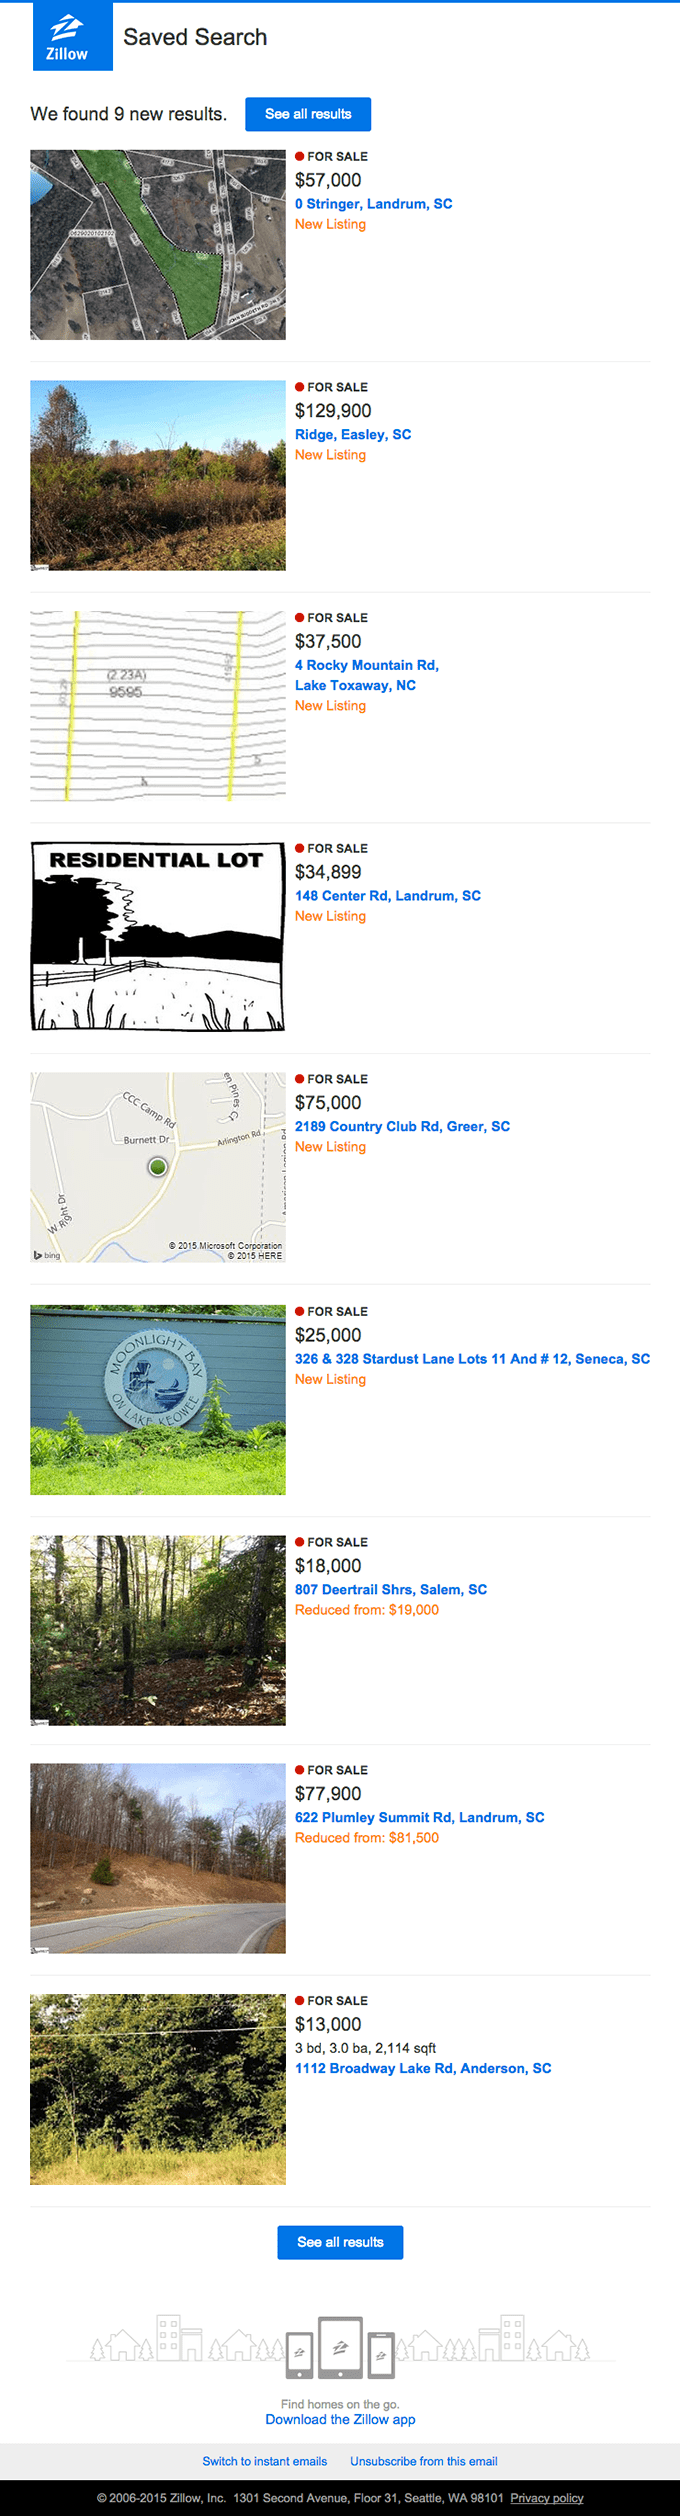 9 Results Your For Sale, Potential Listings near Easley